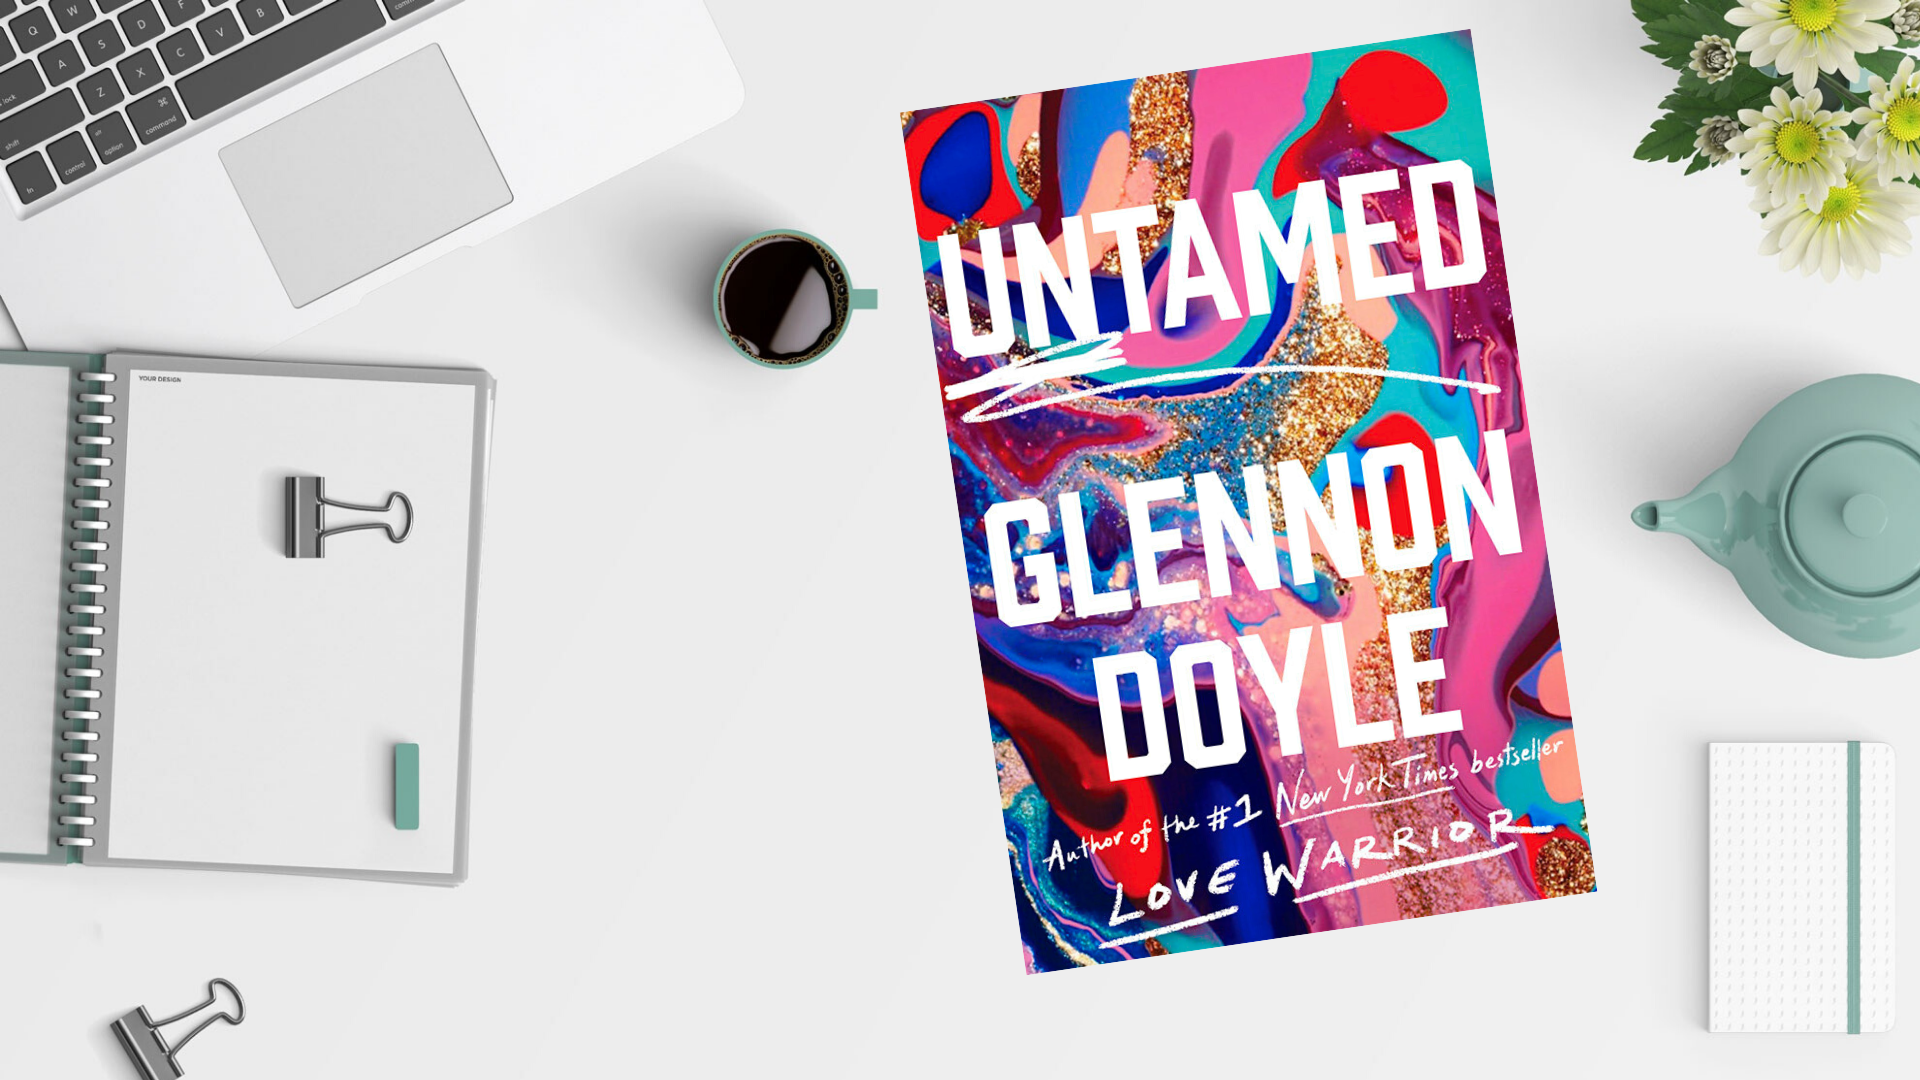 Untamed book by Glennon Doyle